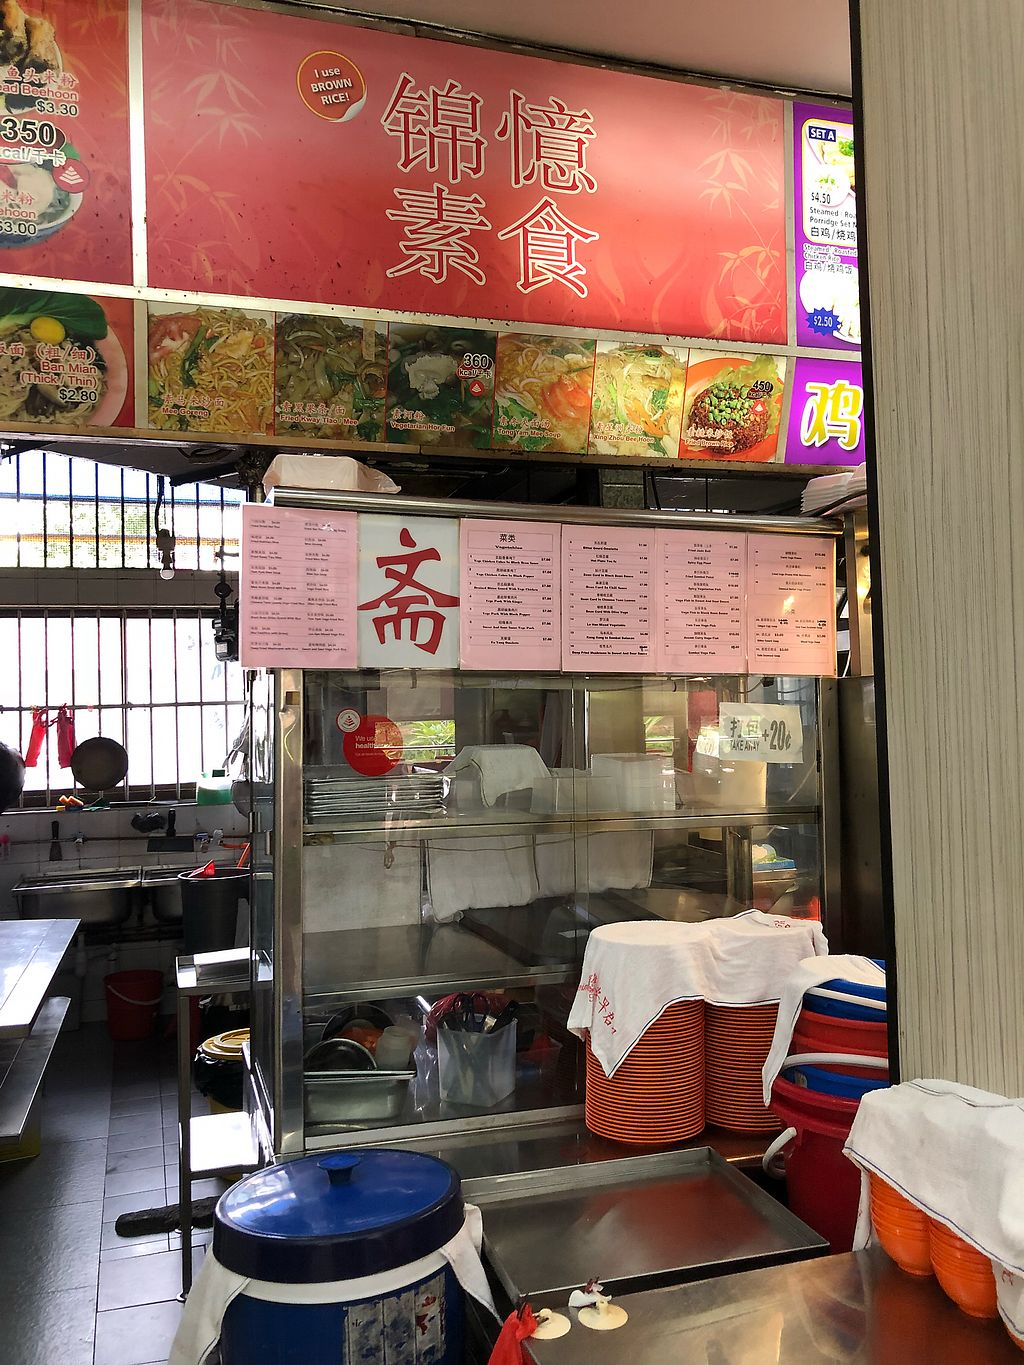 """Photo of Jing Yi Vegetarian Stall  by <a href=""""/members/profile/AmyLeySzeThoo"""">AmyLeySzeThoo</a> <br/>Stall front  <br/> April 6, 2018  - <a href='/contact/abuse/image/55102/381416'>Report</a>"""